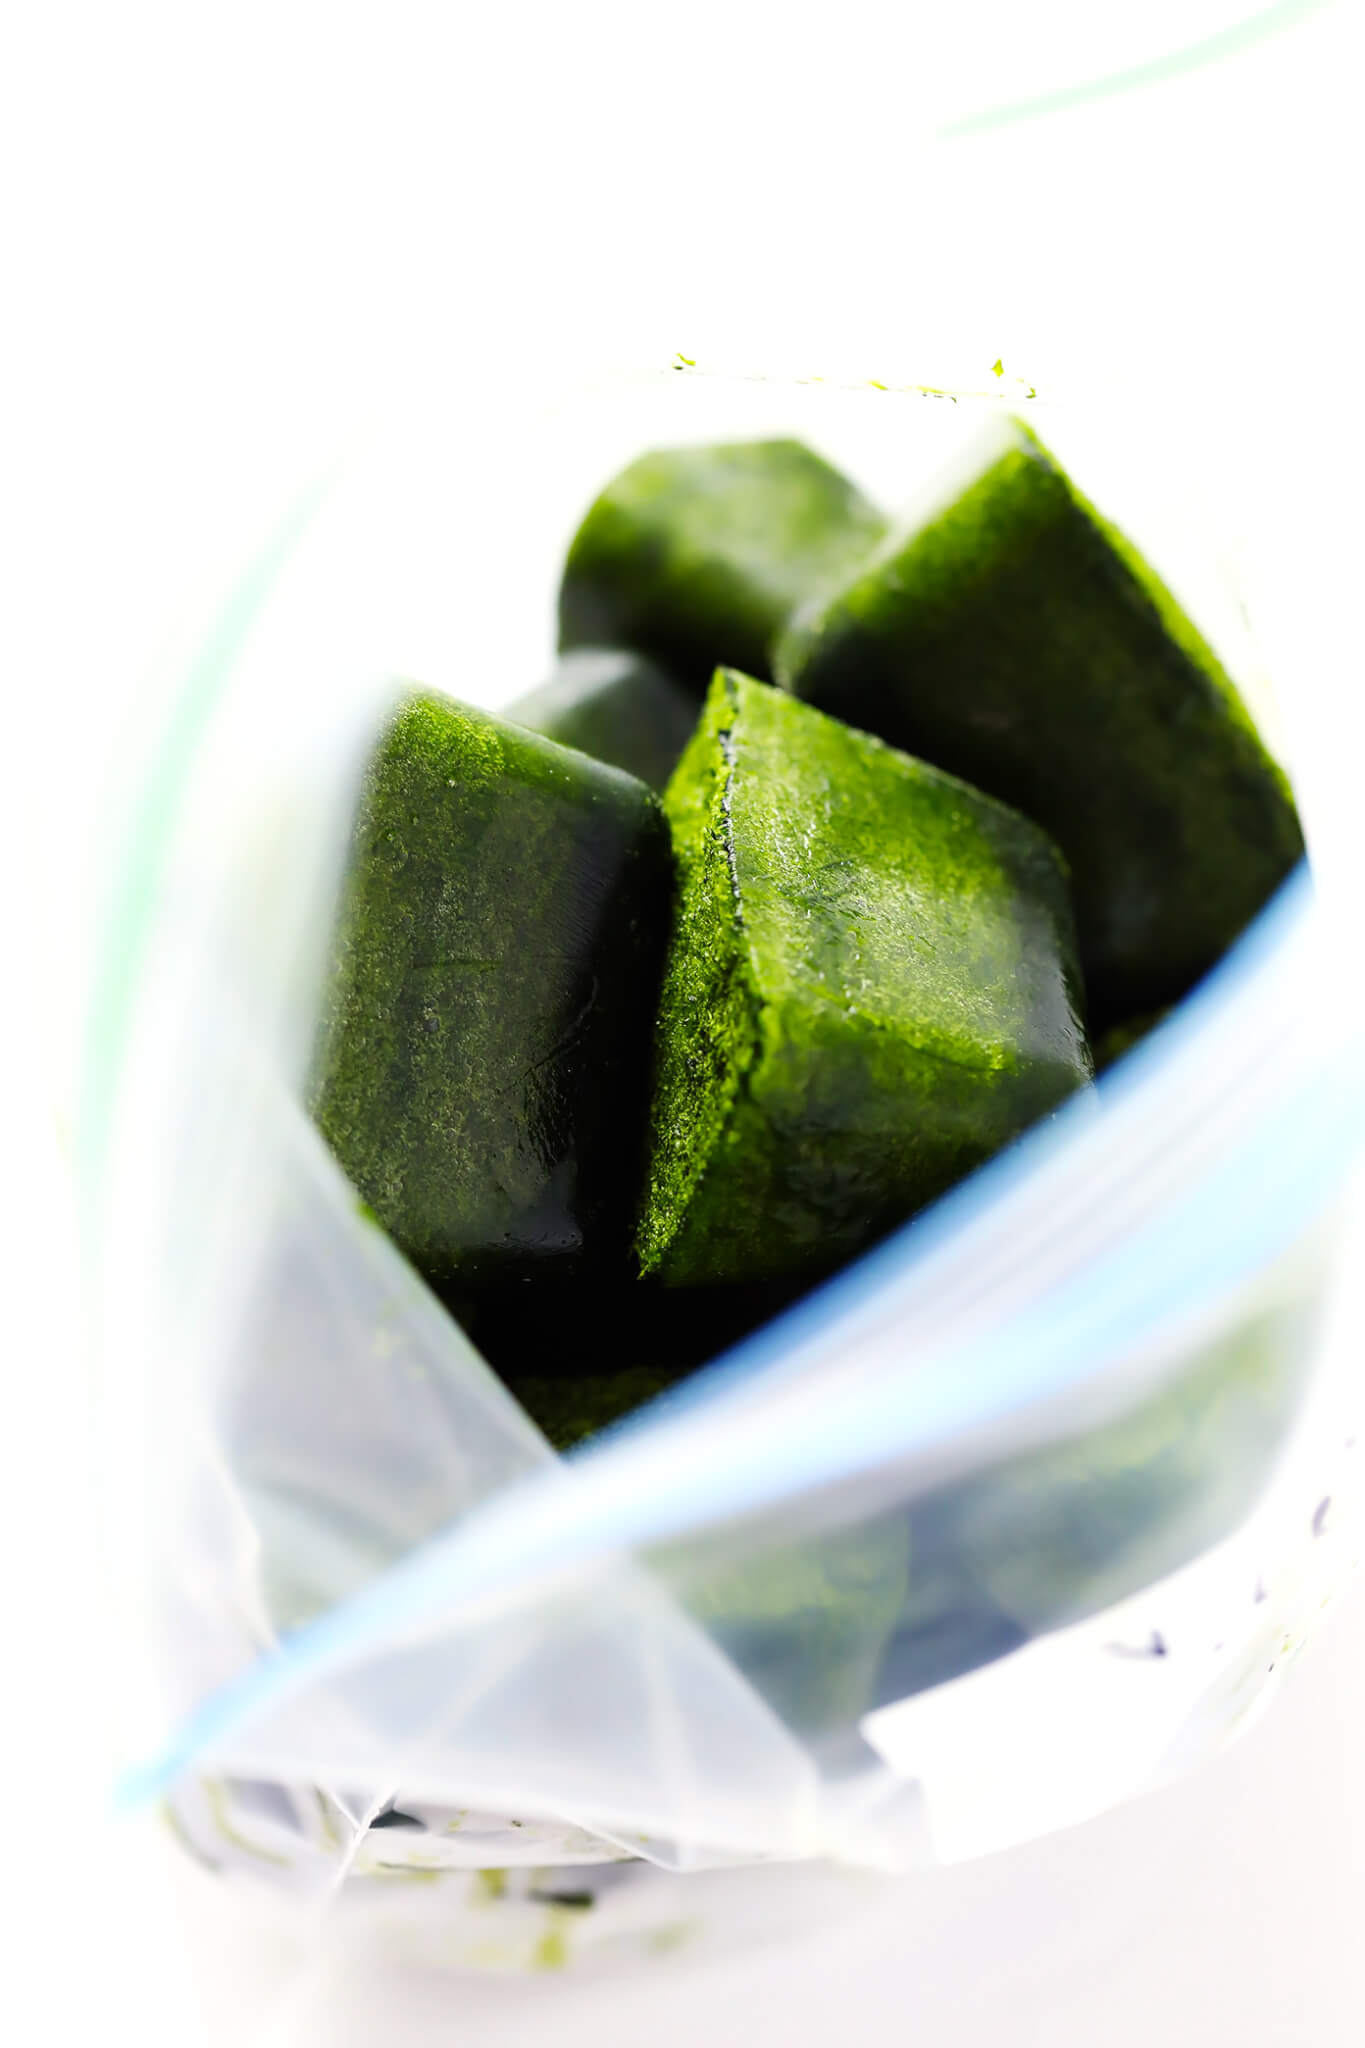 This Frozen Spinach Cubes recipe is a lifesaver! Just puree some spinach and coconut water, freeze, and add to green smoothies whenever you'd like! | gimmesomeoven.com